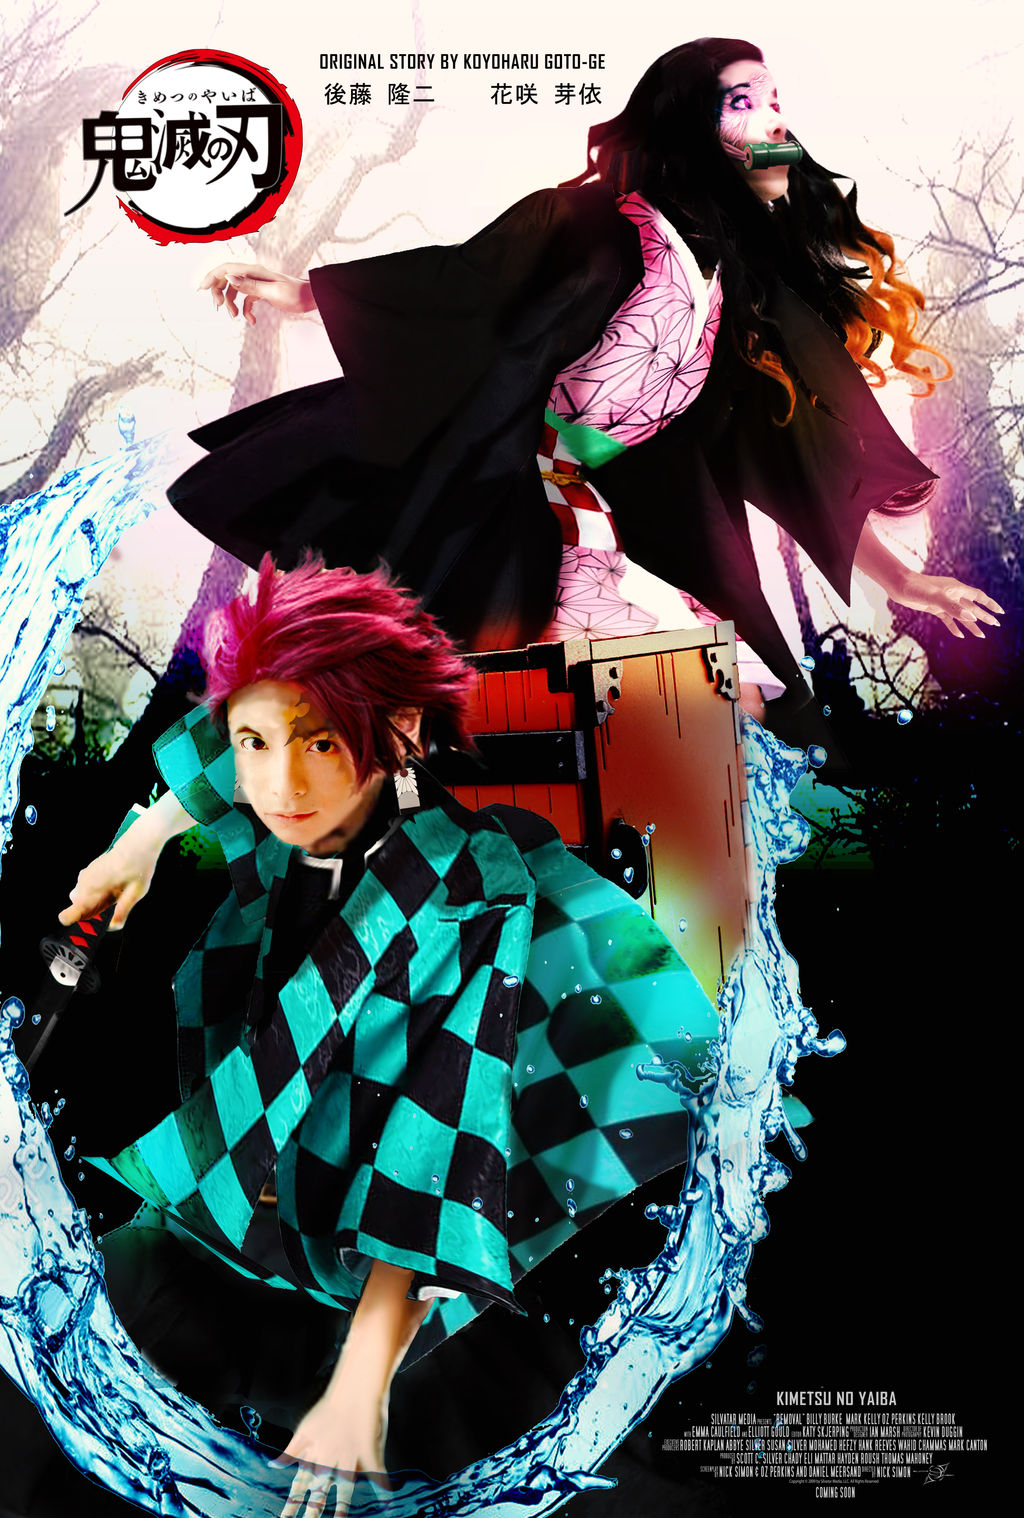 Kimetsu No Yaiba Fake Live Action Movie Poster By Asukasteffie On